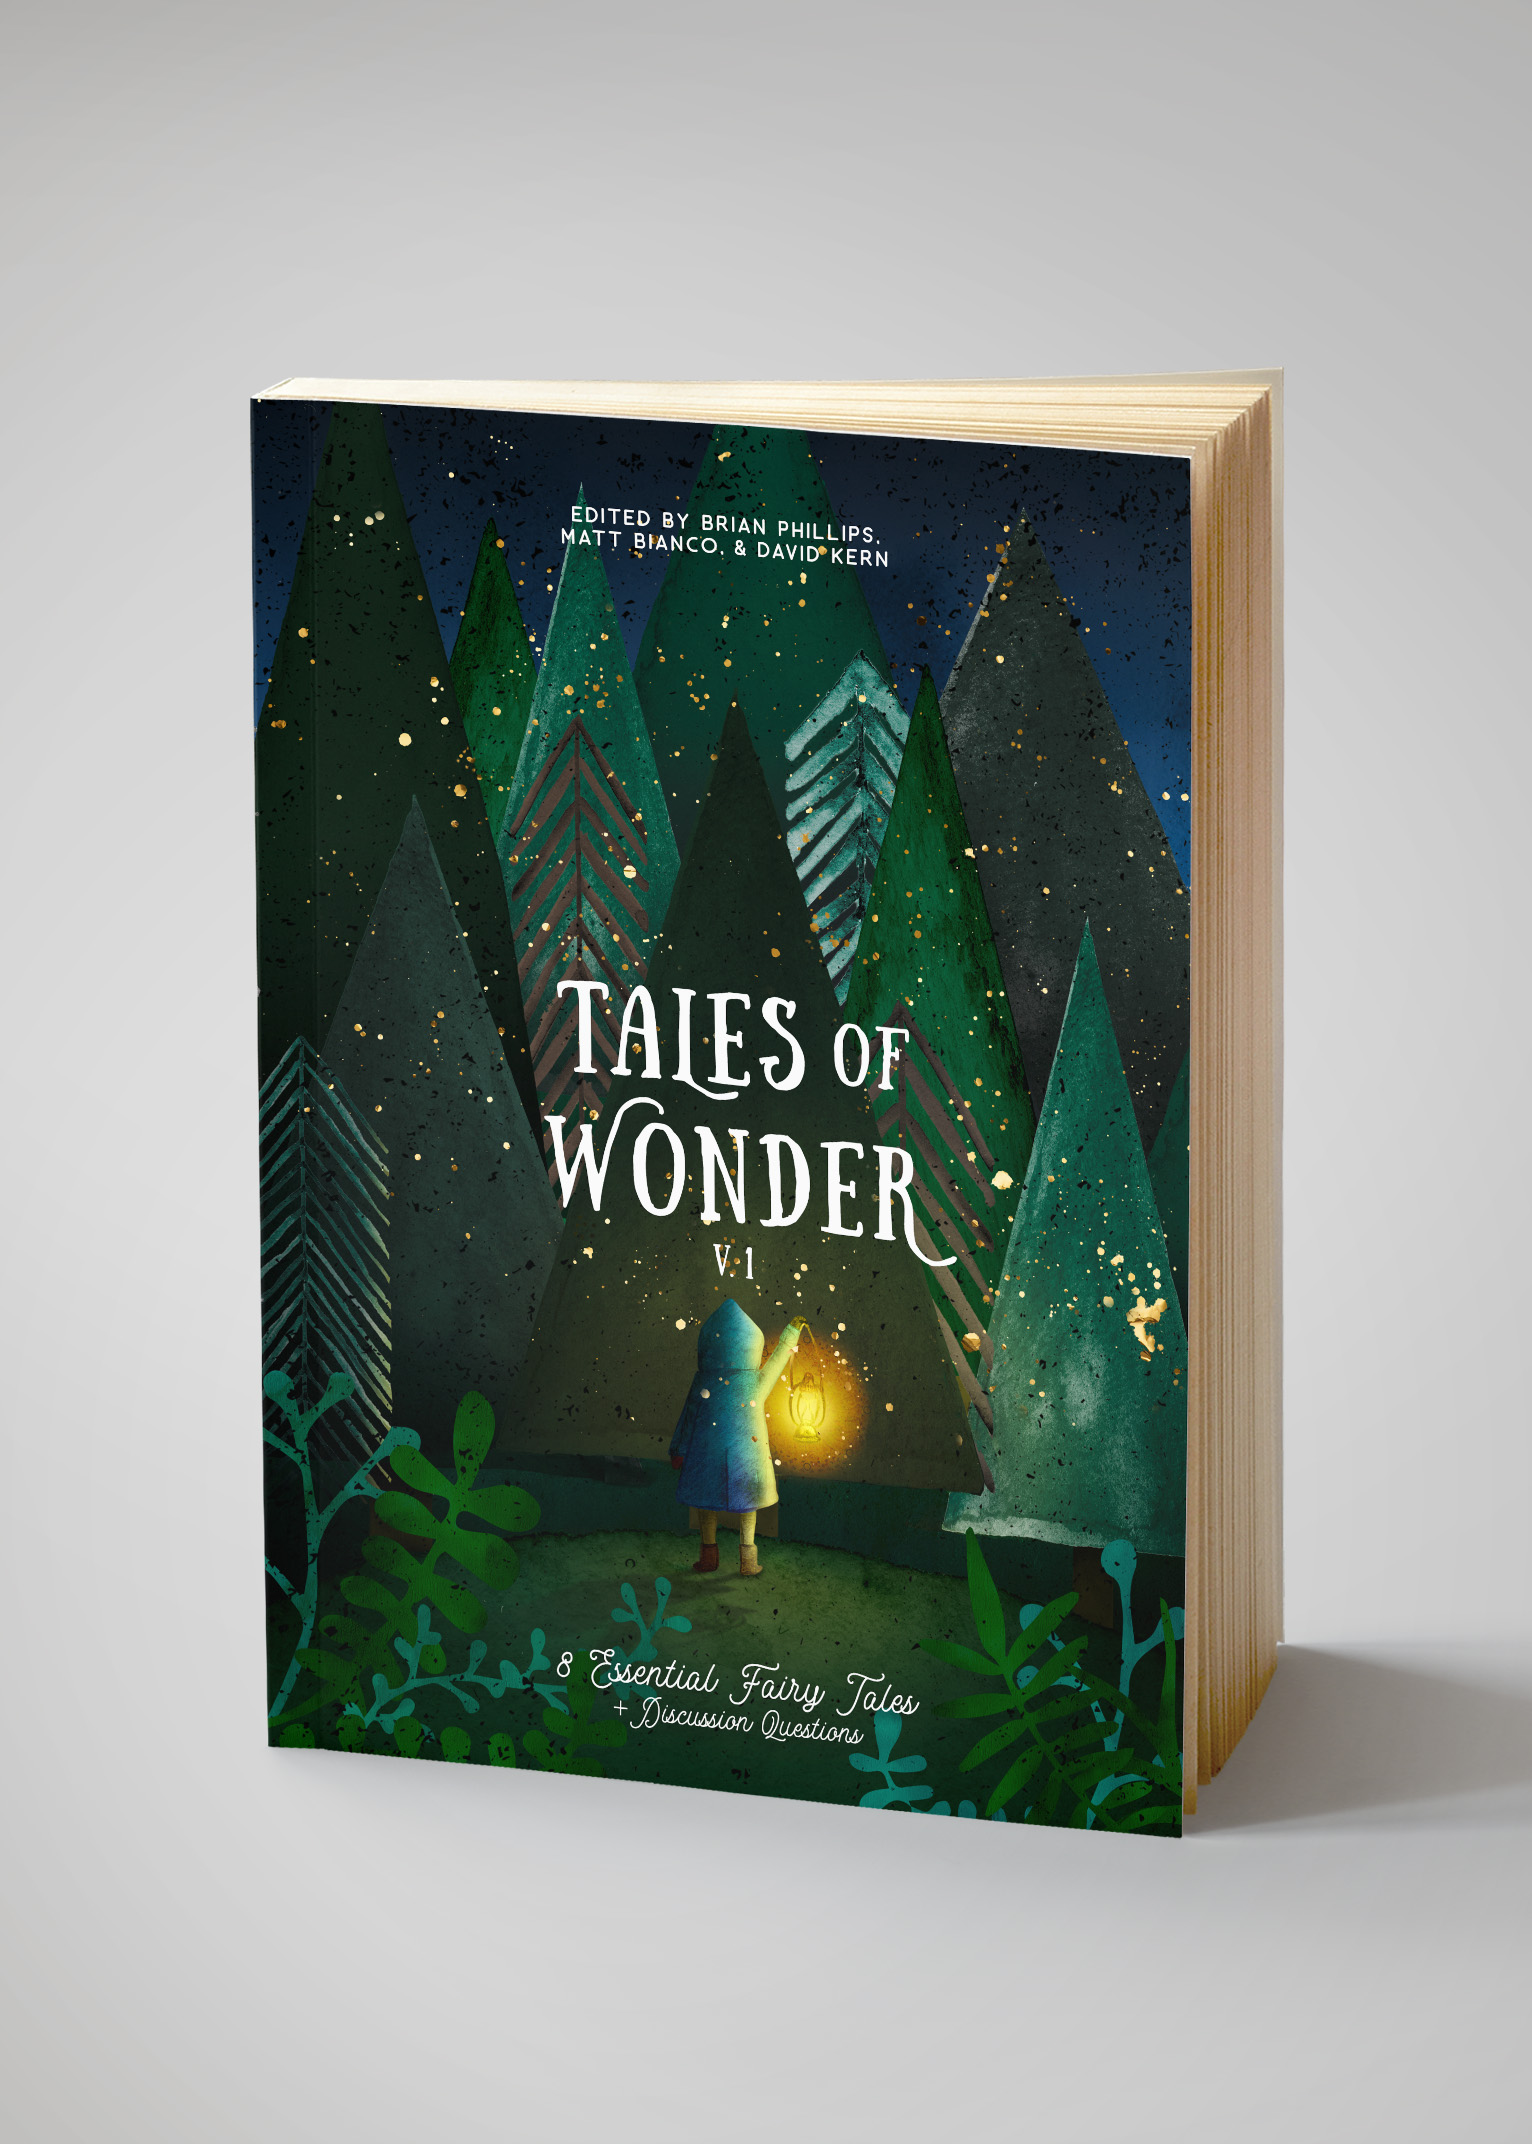 Tales of Wonder (Volume I): 8 Essential Fairy Tales + Discussion Questions